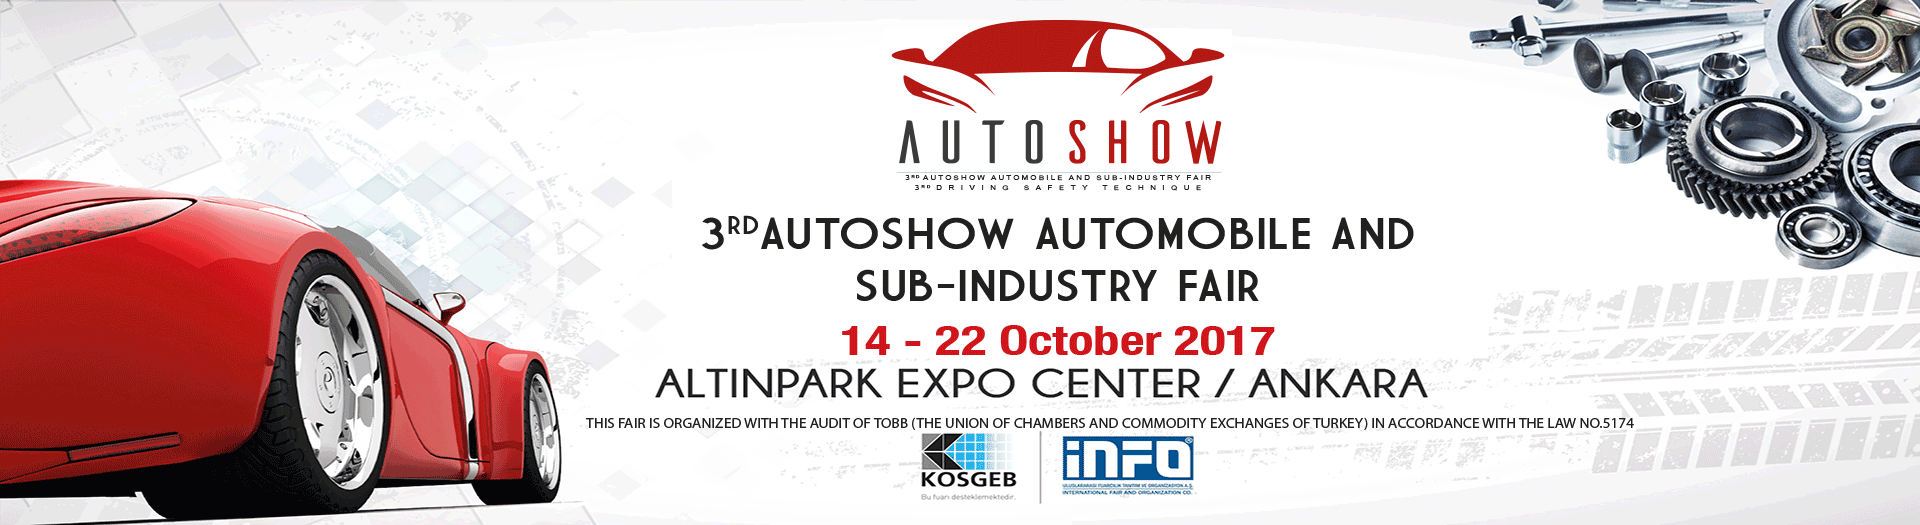 AUTOSHOW 2017 – 3rd AUTOMOBİLE and SUB –INDUSTRY Fair